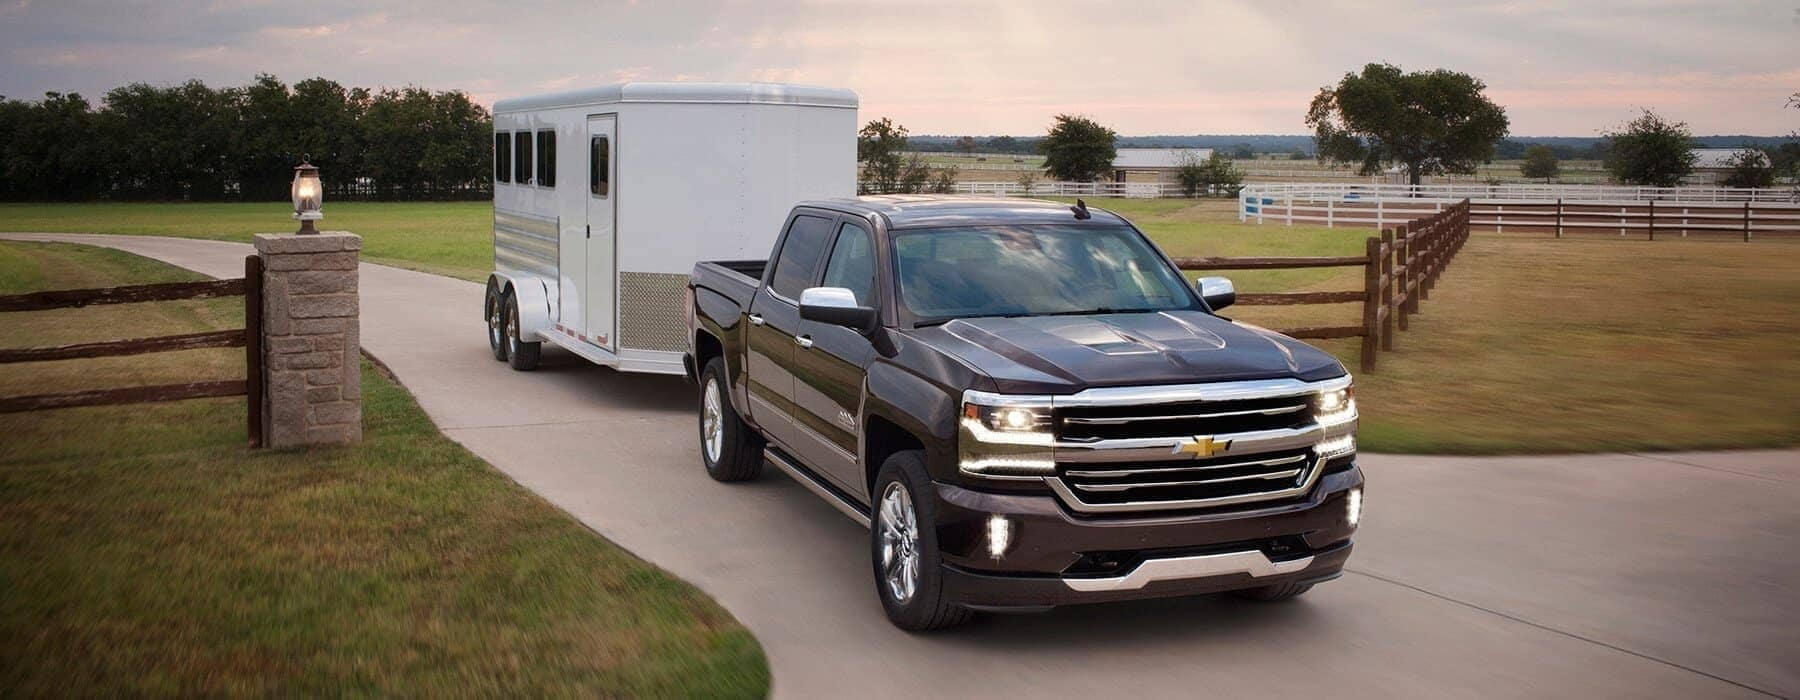 hight resolution of 2019 chevy silverado 1500 towing a trailer